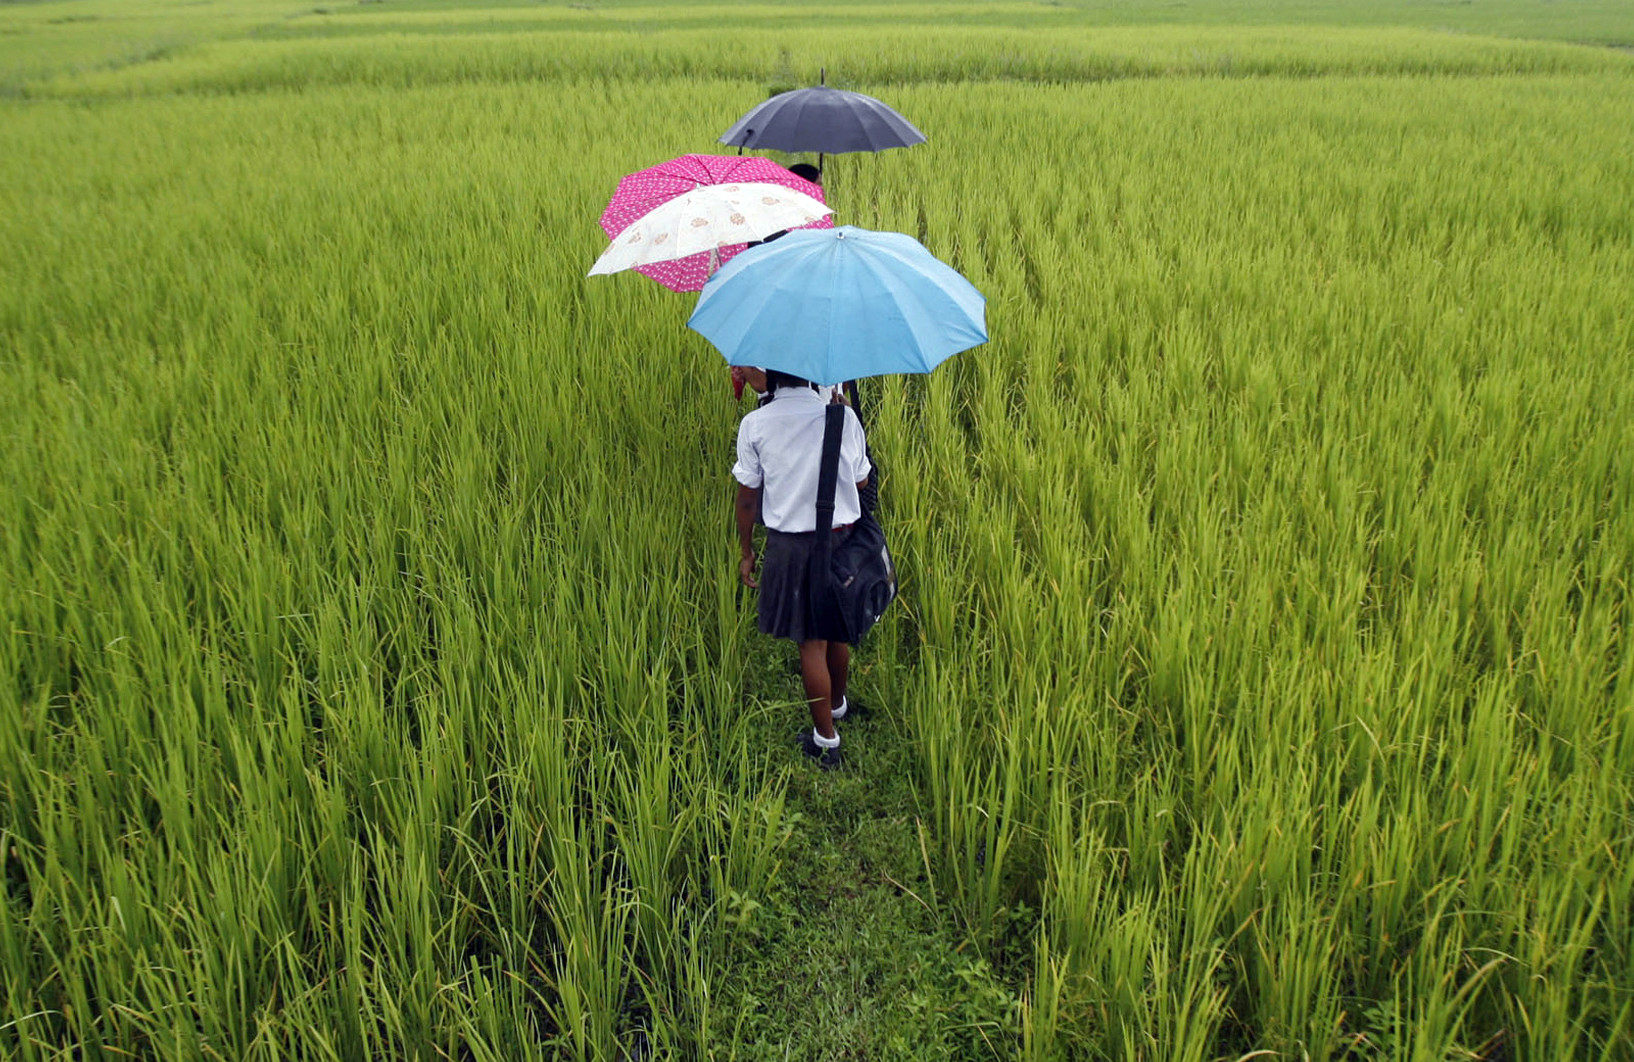 School children walk through a field at Koribari village on the outskirts of the northeastern Indian city of Siliguri August 25, 2008. Indian corn futures may trade higher on Monday with record exports and a lower acreage supporting and better-than-expected crop, aided by late rains, weighing, analysts said. REUTERS/Rupak De Chowdhuri (INDIA) - GM1E48Q0J6F01